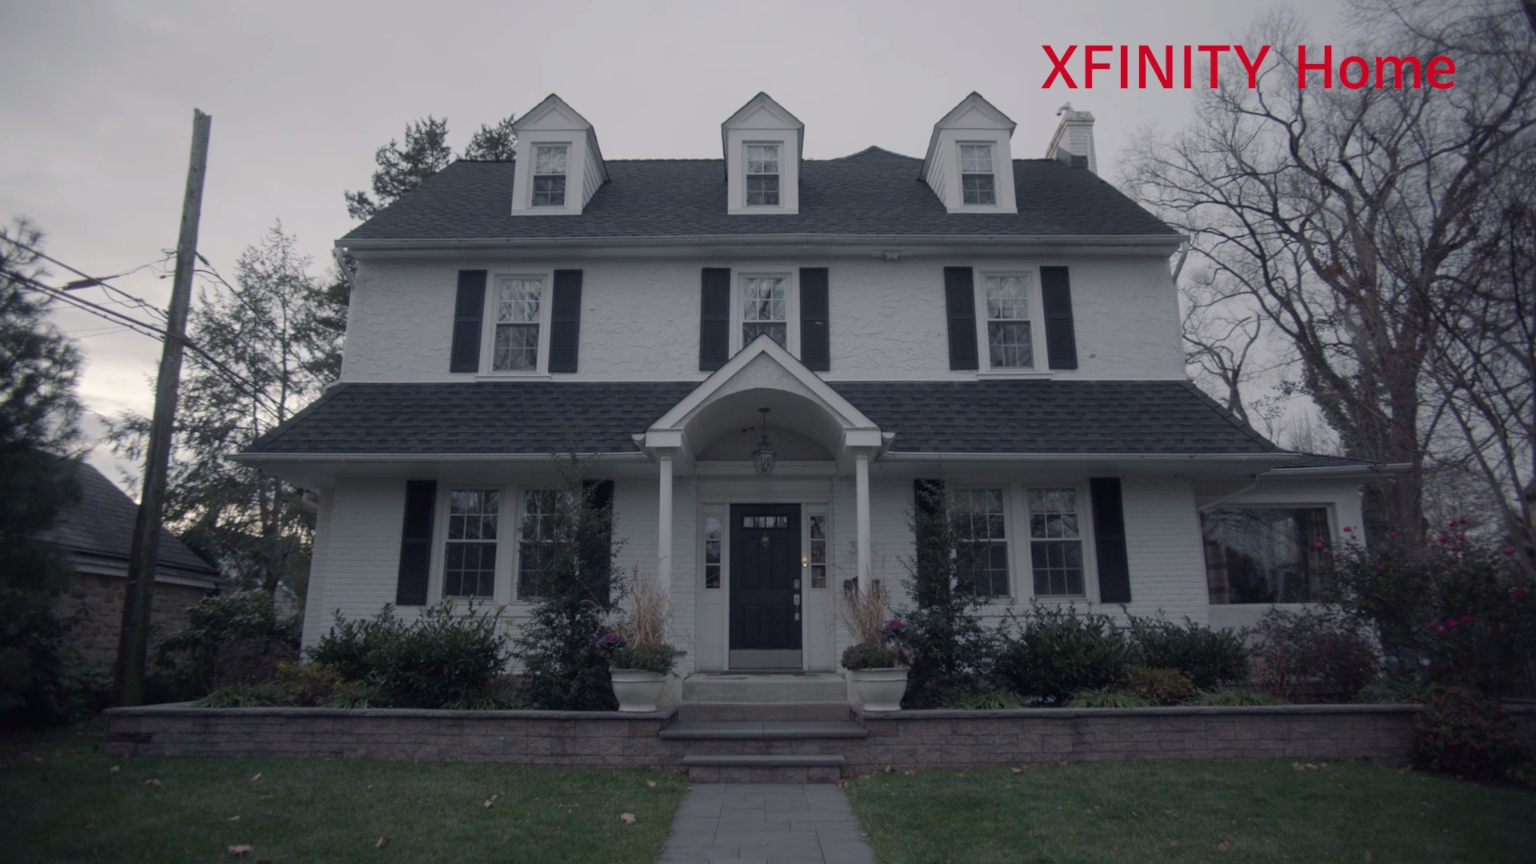 Want peace of mind when it comes to the safety of your home XFINITY